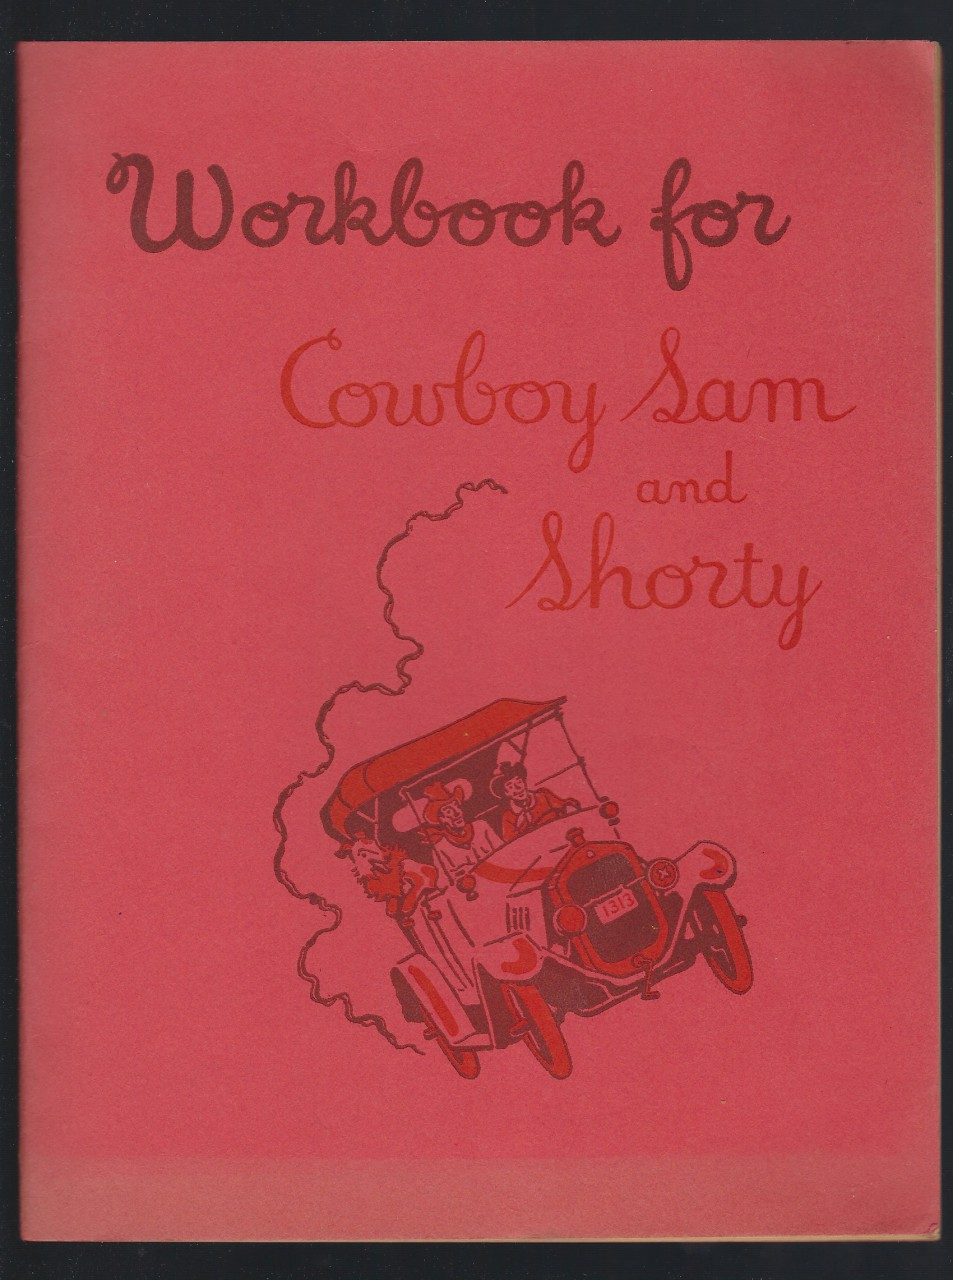 Workbook for Cowboy Sam and Shorty 1956, Marjorie Ragsdale